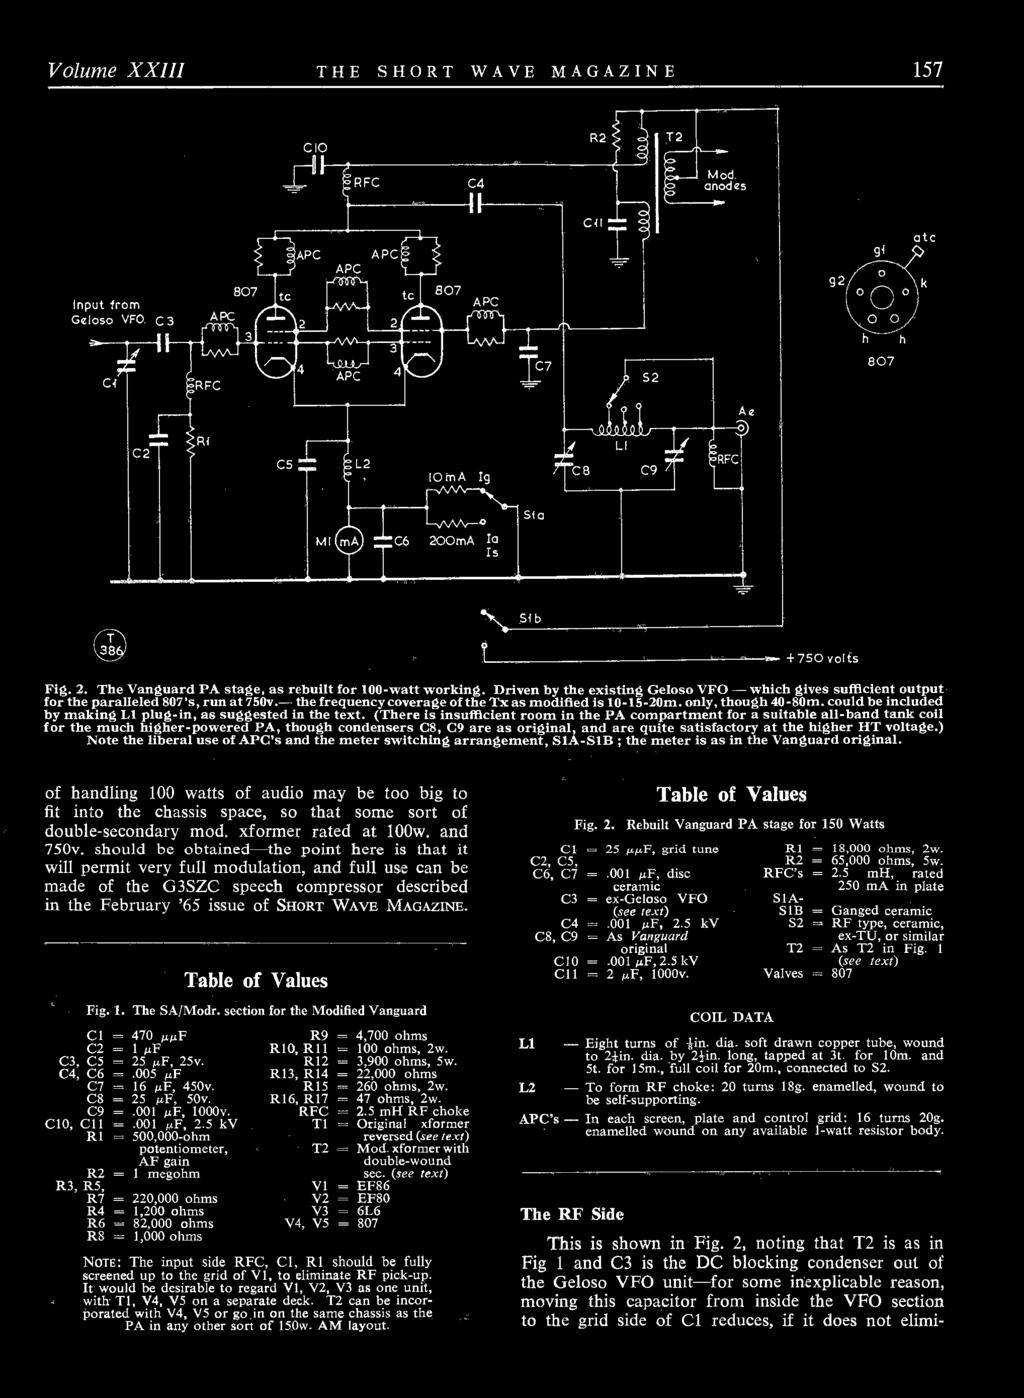 Kw Models For 1965 Ssb Transceiver 600 Linear Amp 2000a Circuit Diagram 80m 40m Driven By The Existing Geloso Vfo Which Gives Sufficient Output Paralleled 807s